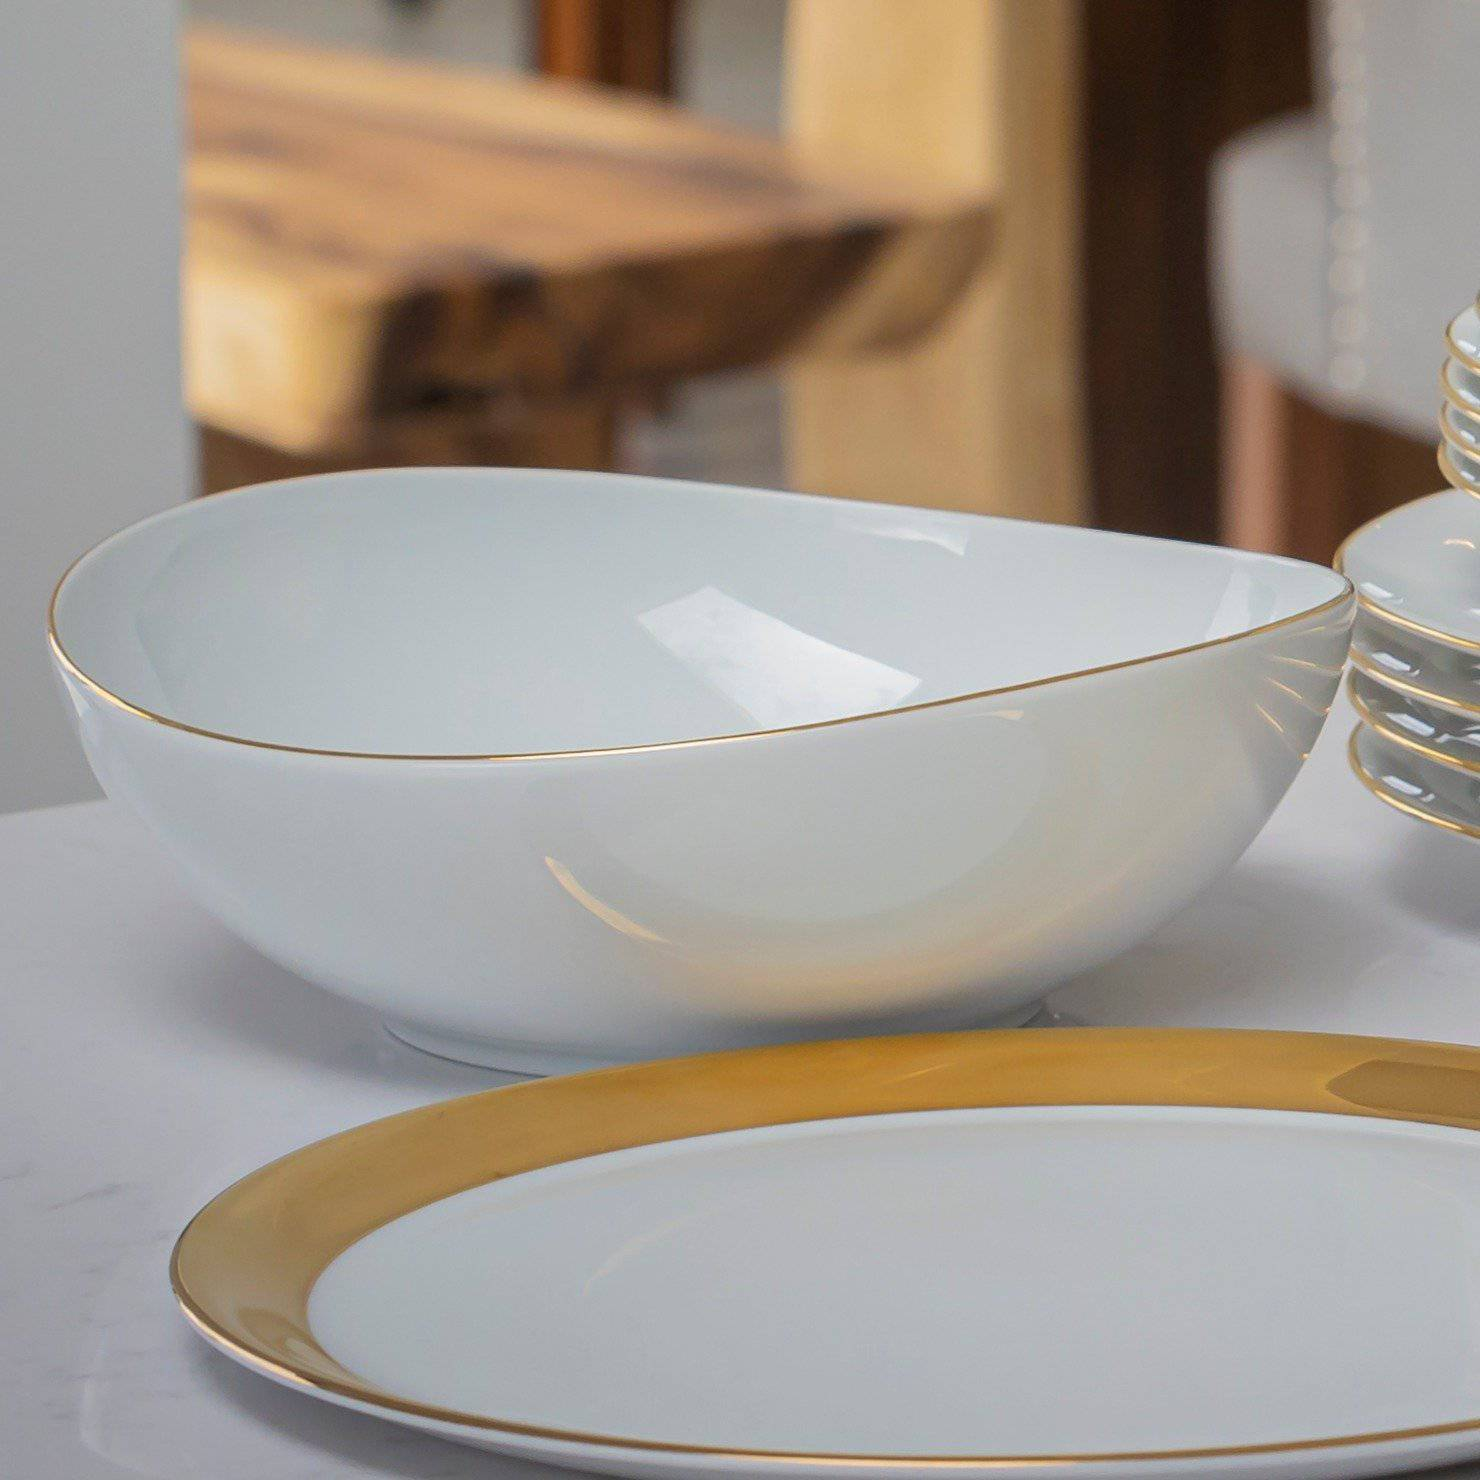 Serving bowl with gold rim - Hostaro Tableware